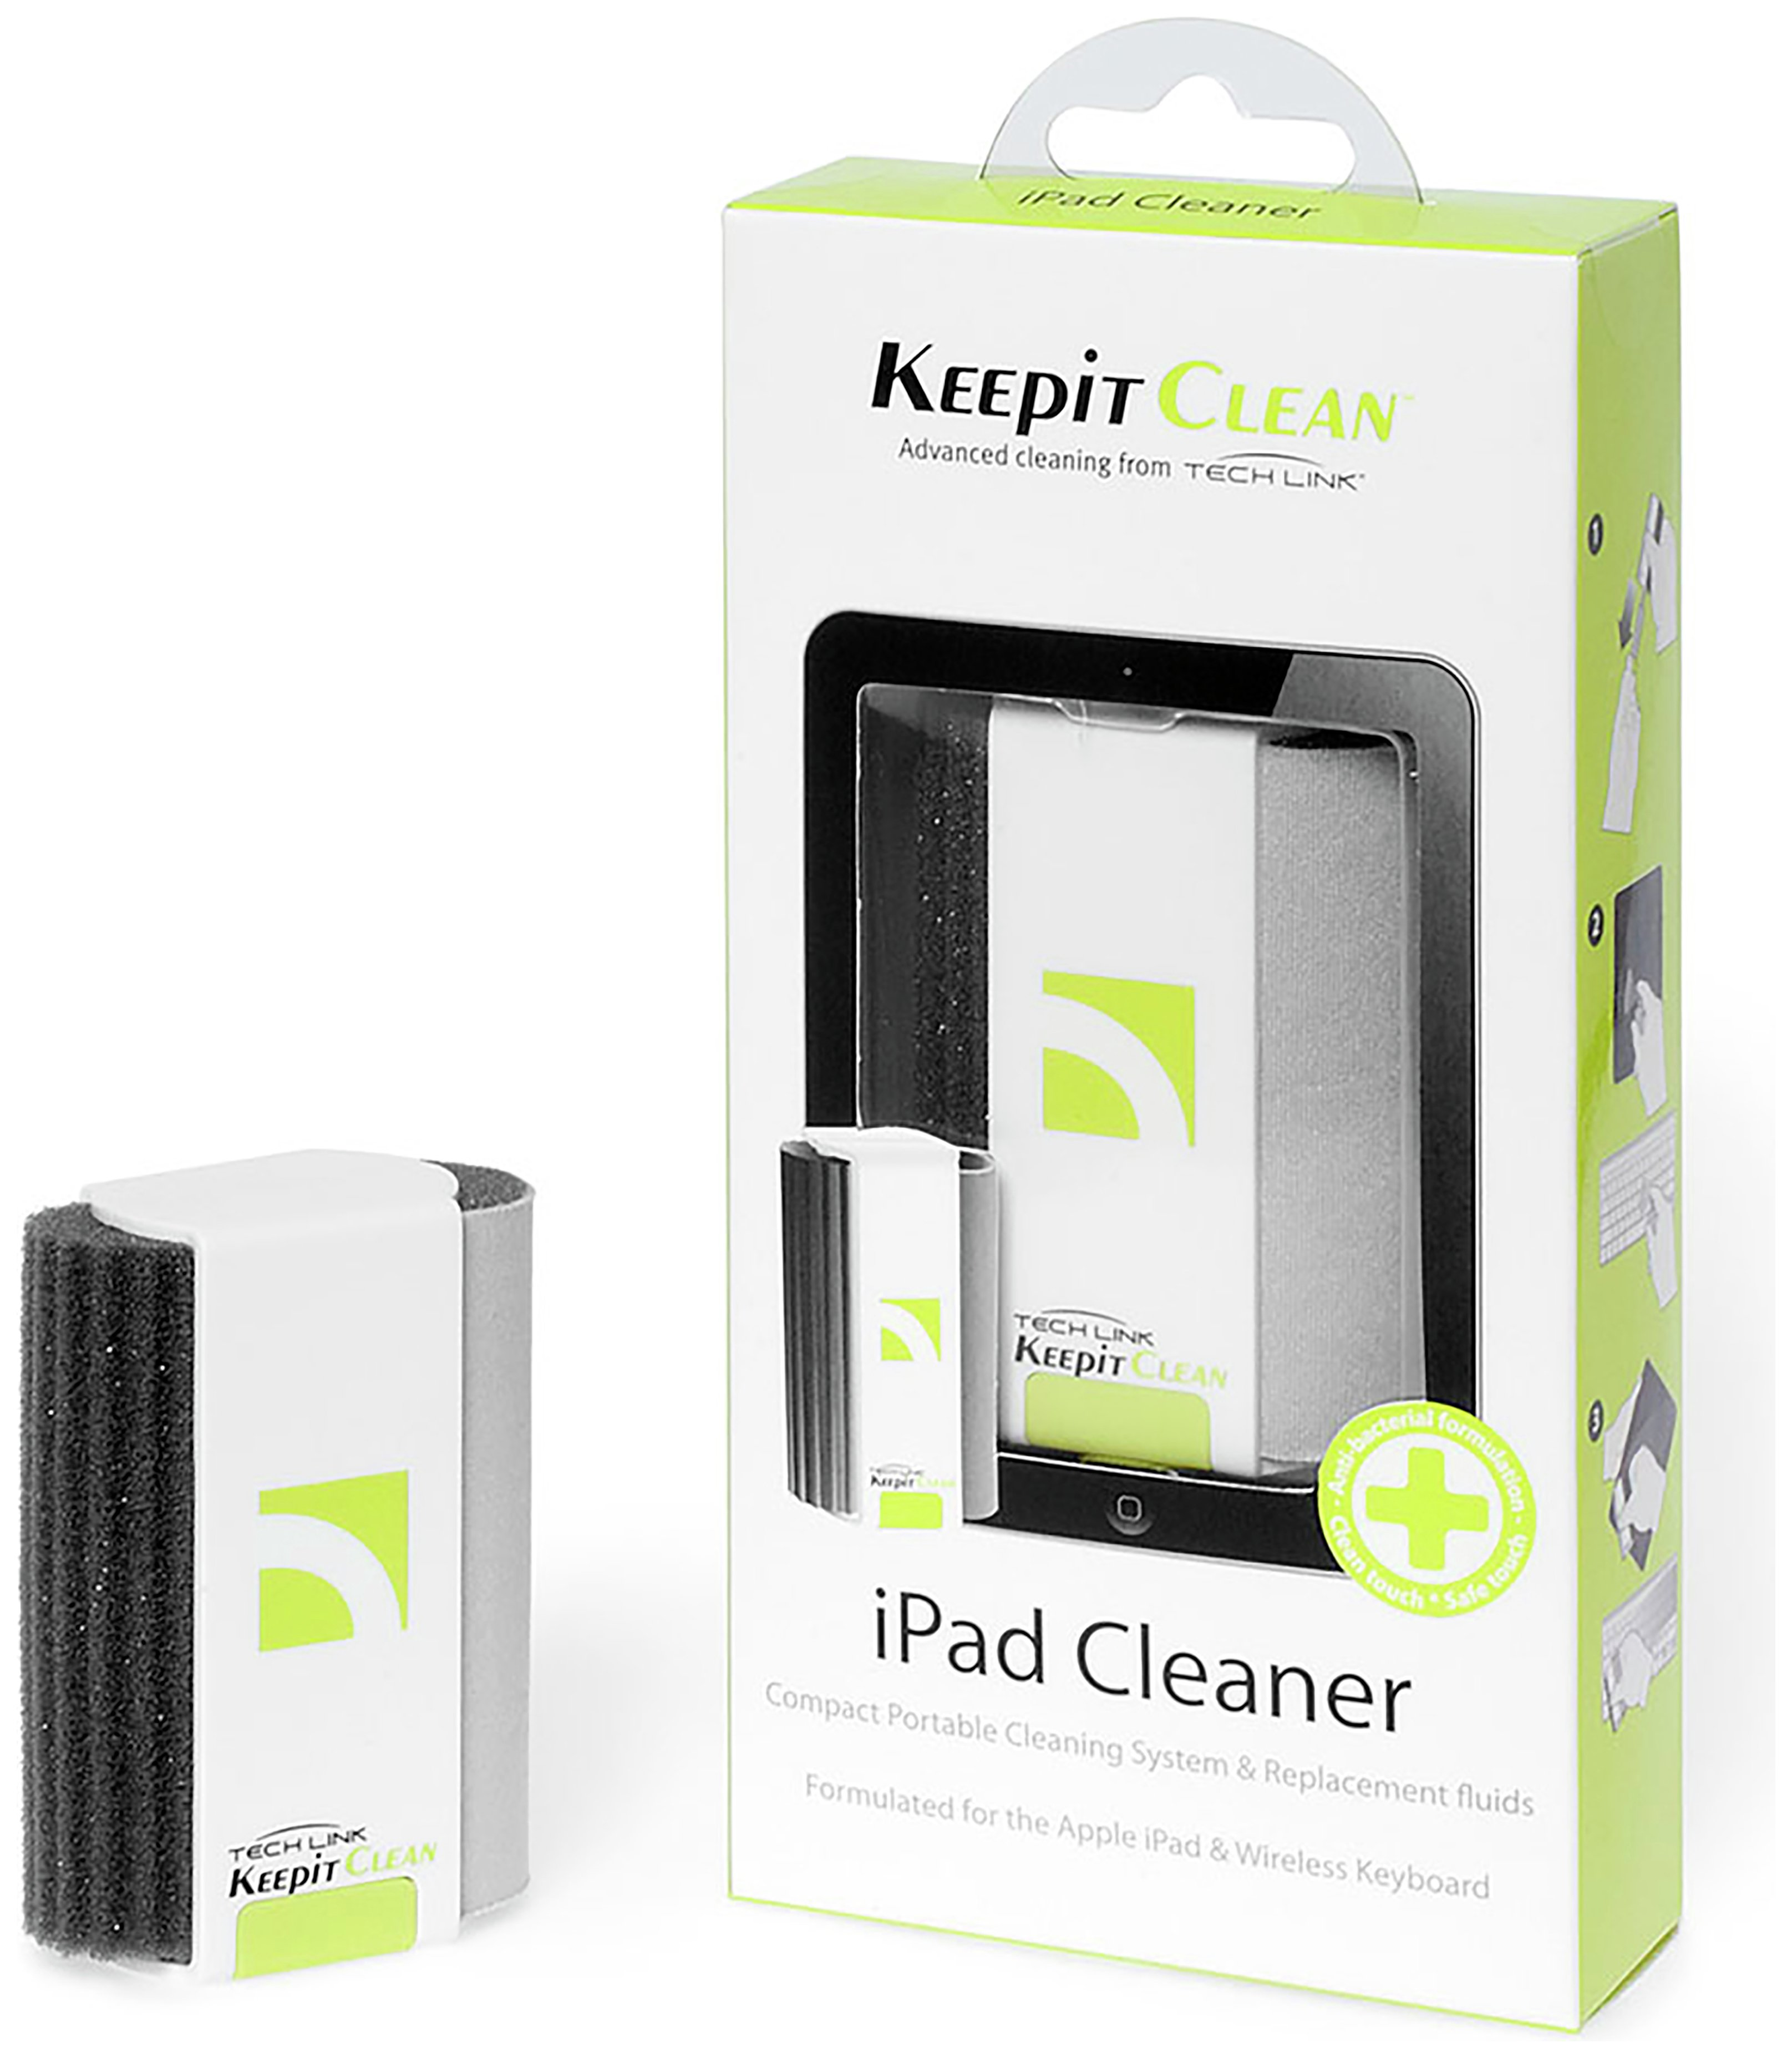 techlink-apple-i-pad-cleaner